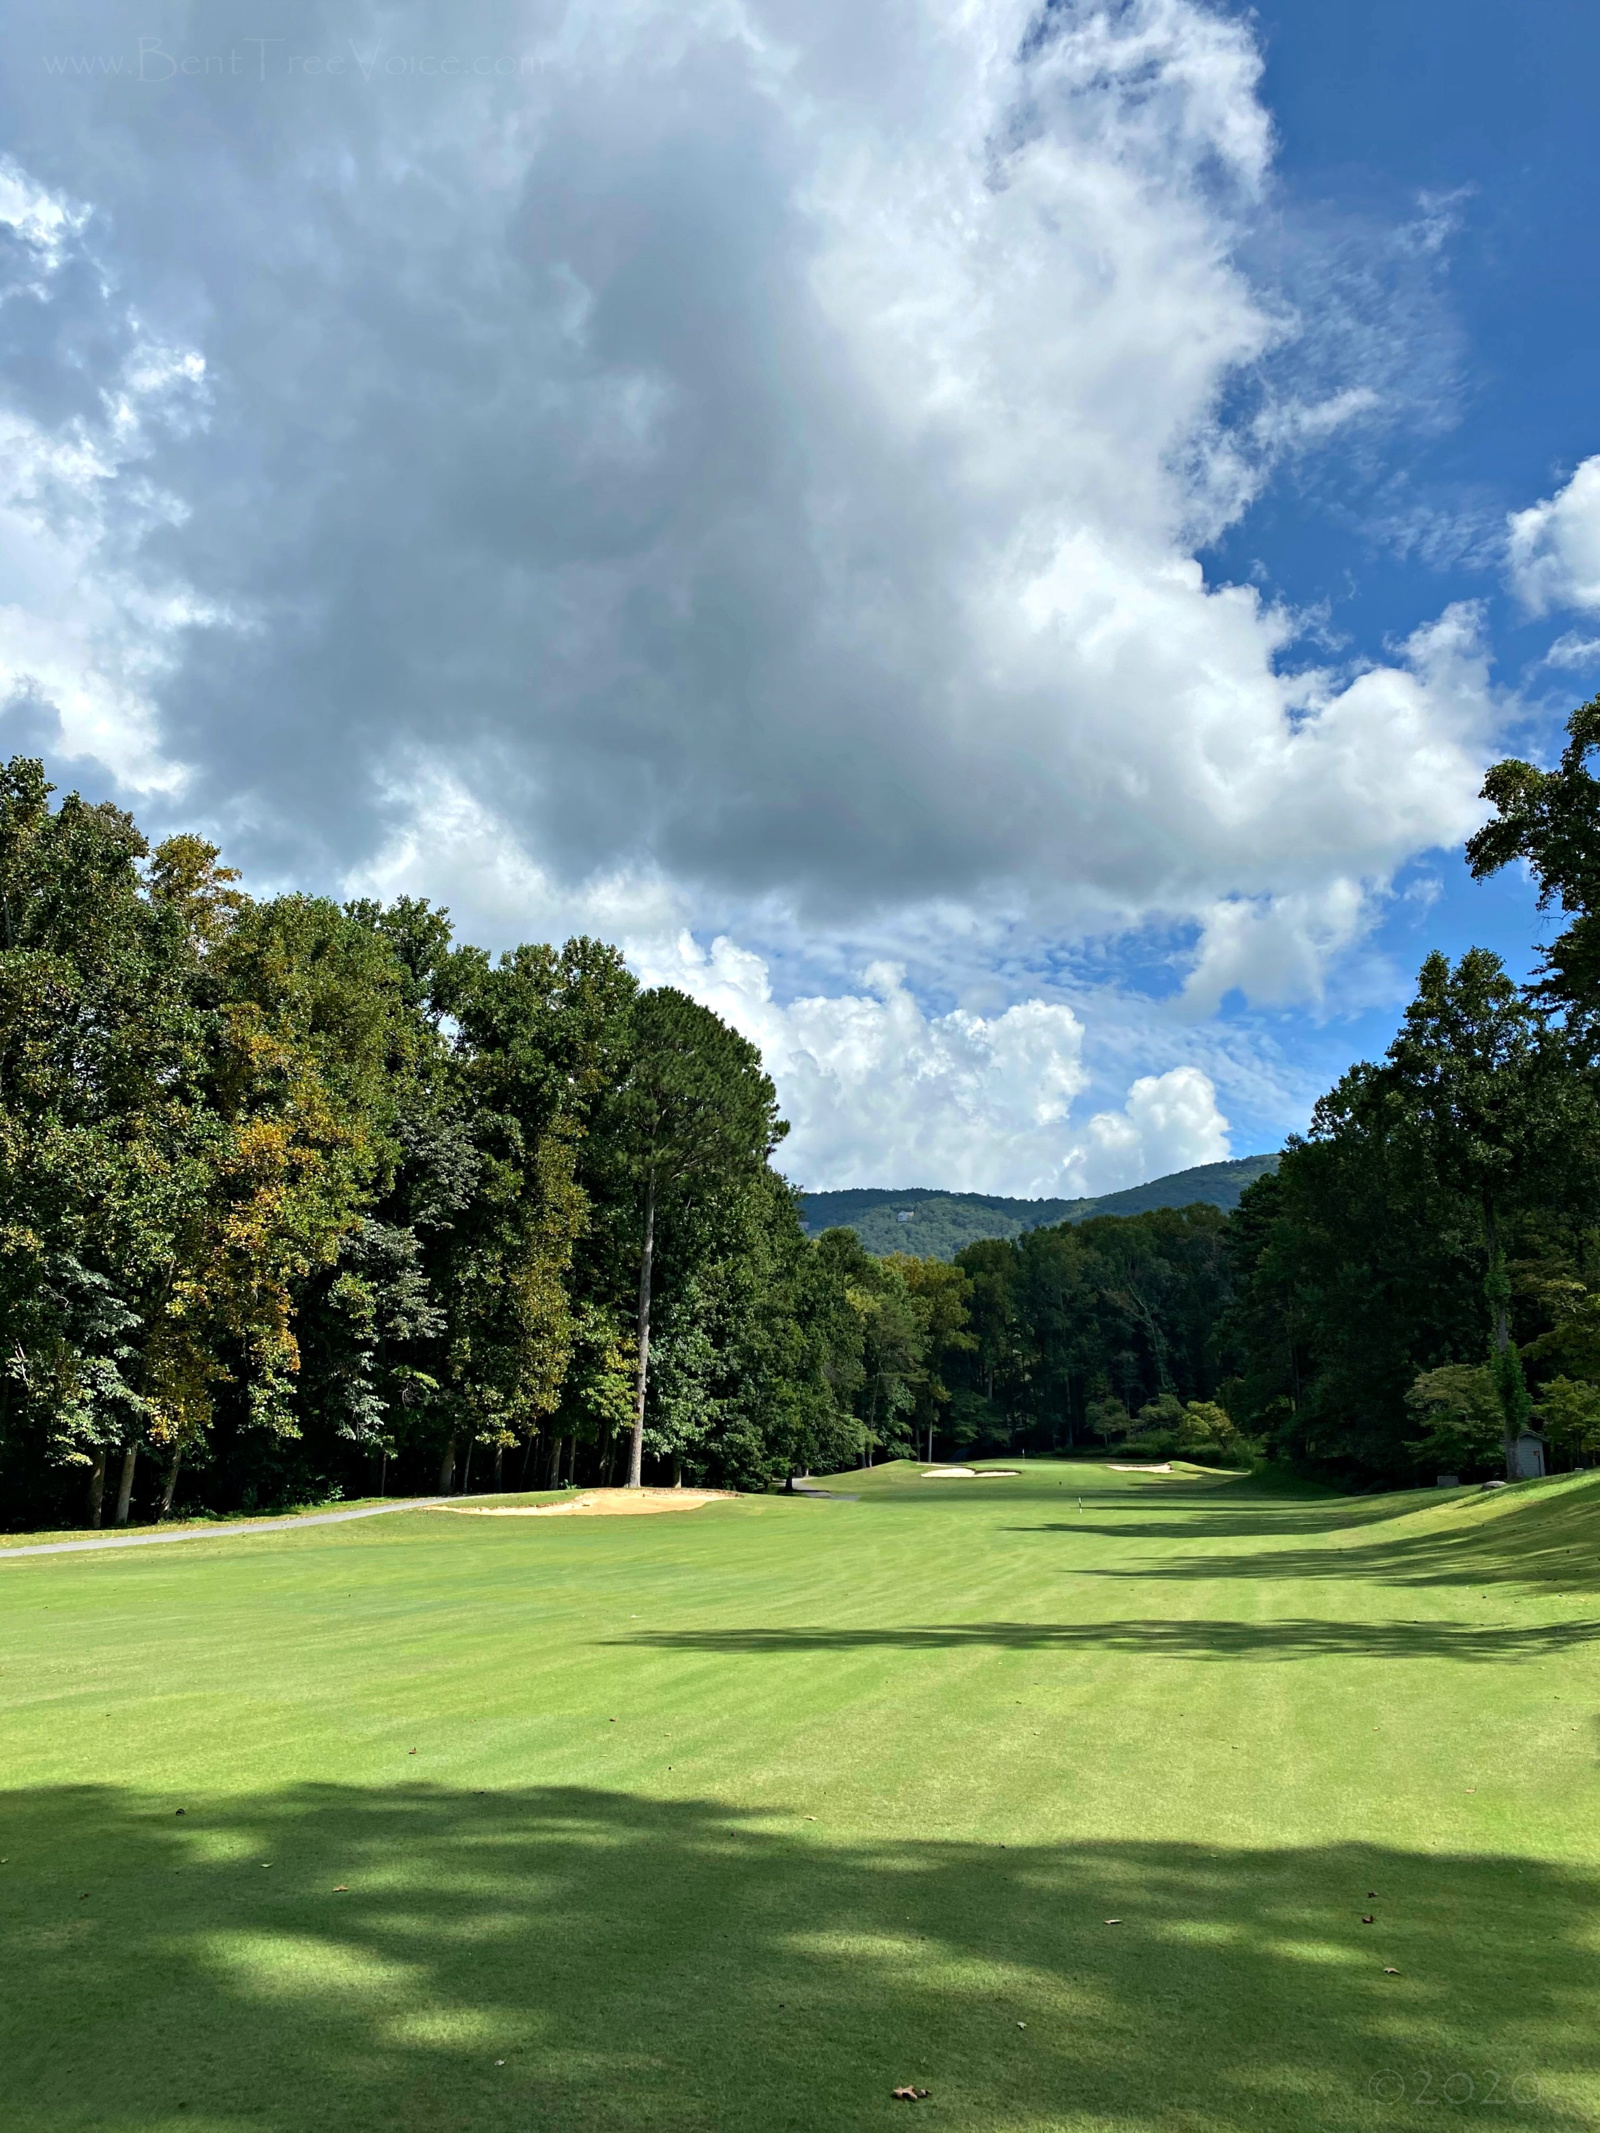 September 14, 2020 - Hole 10, Bent Tree Golf Course